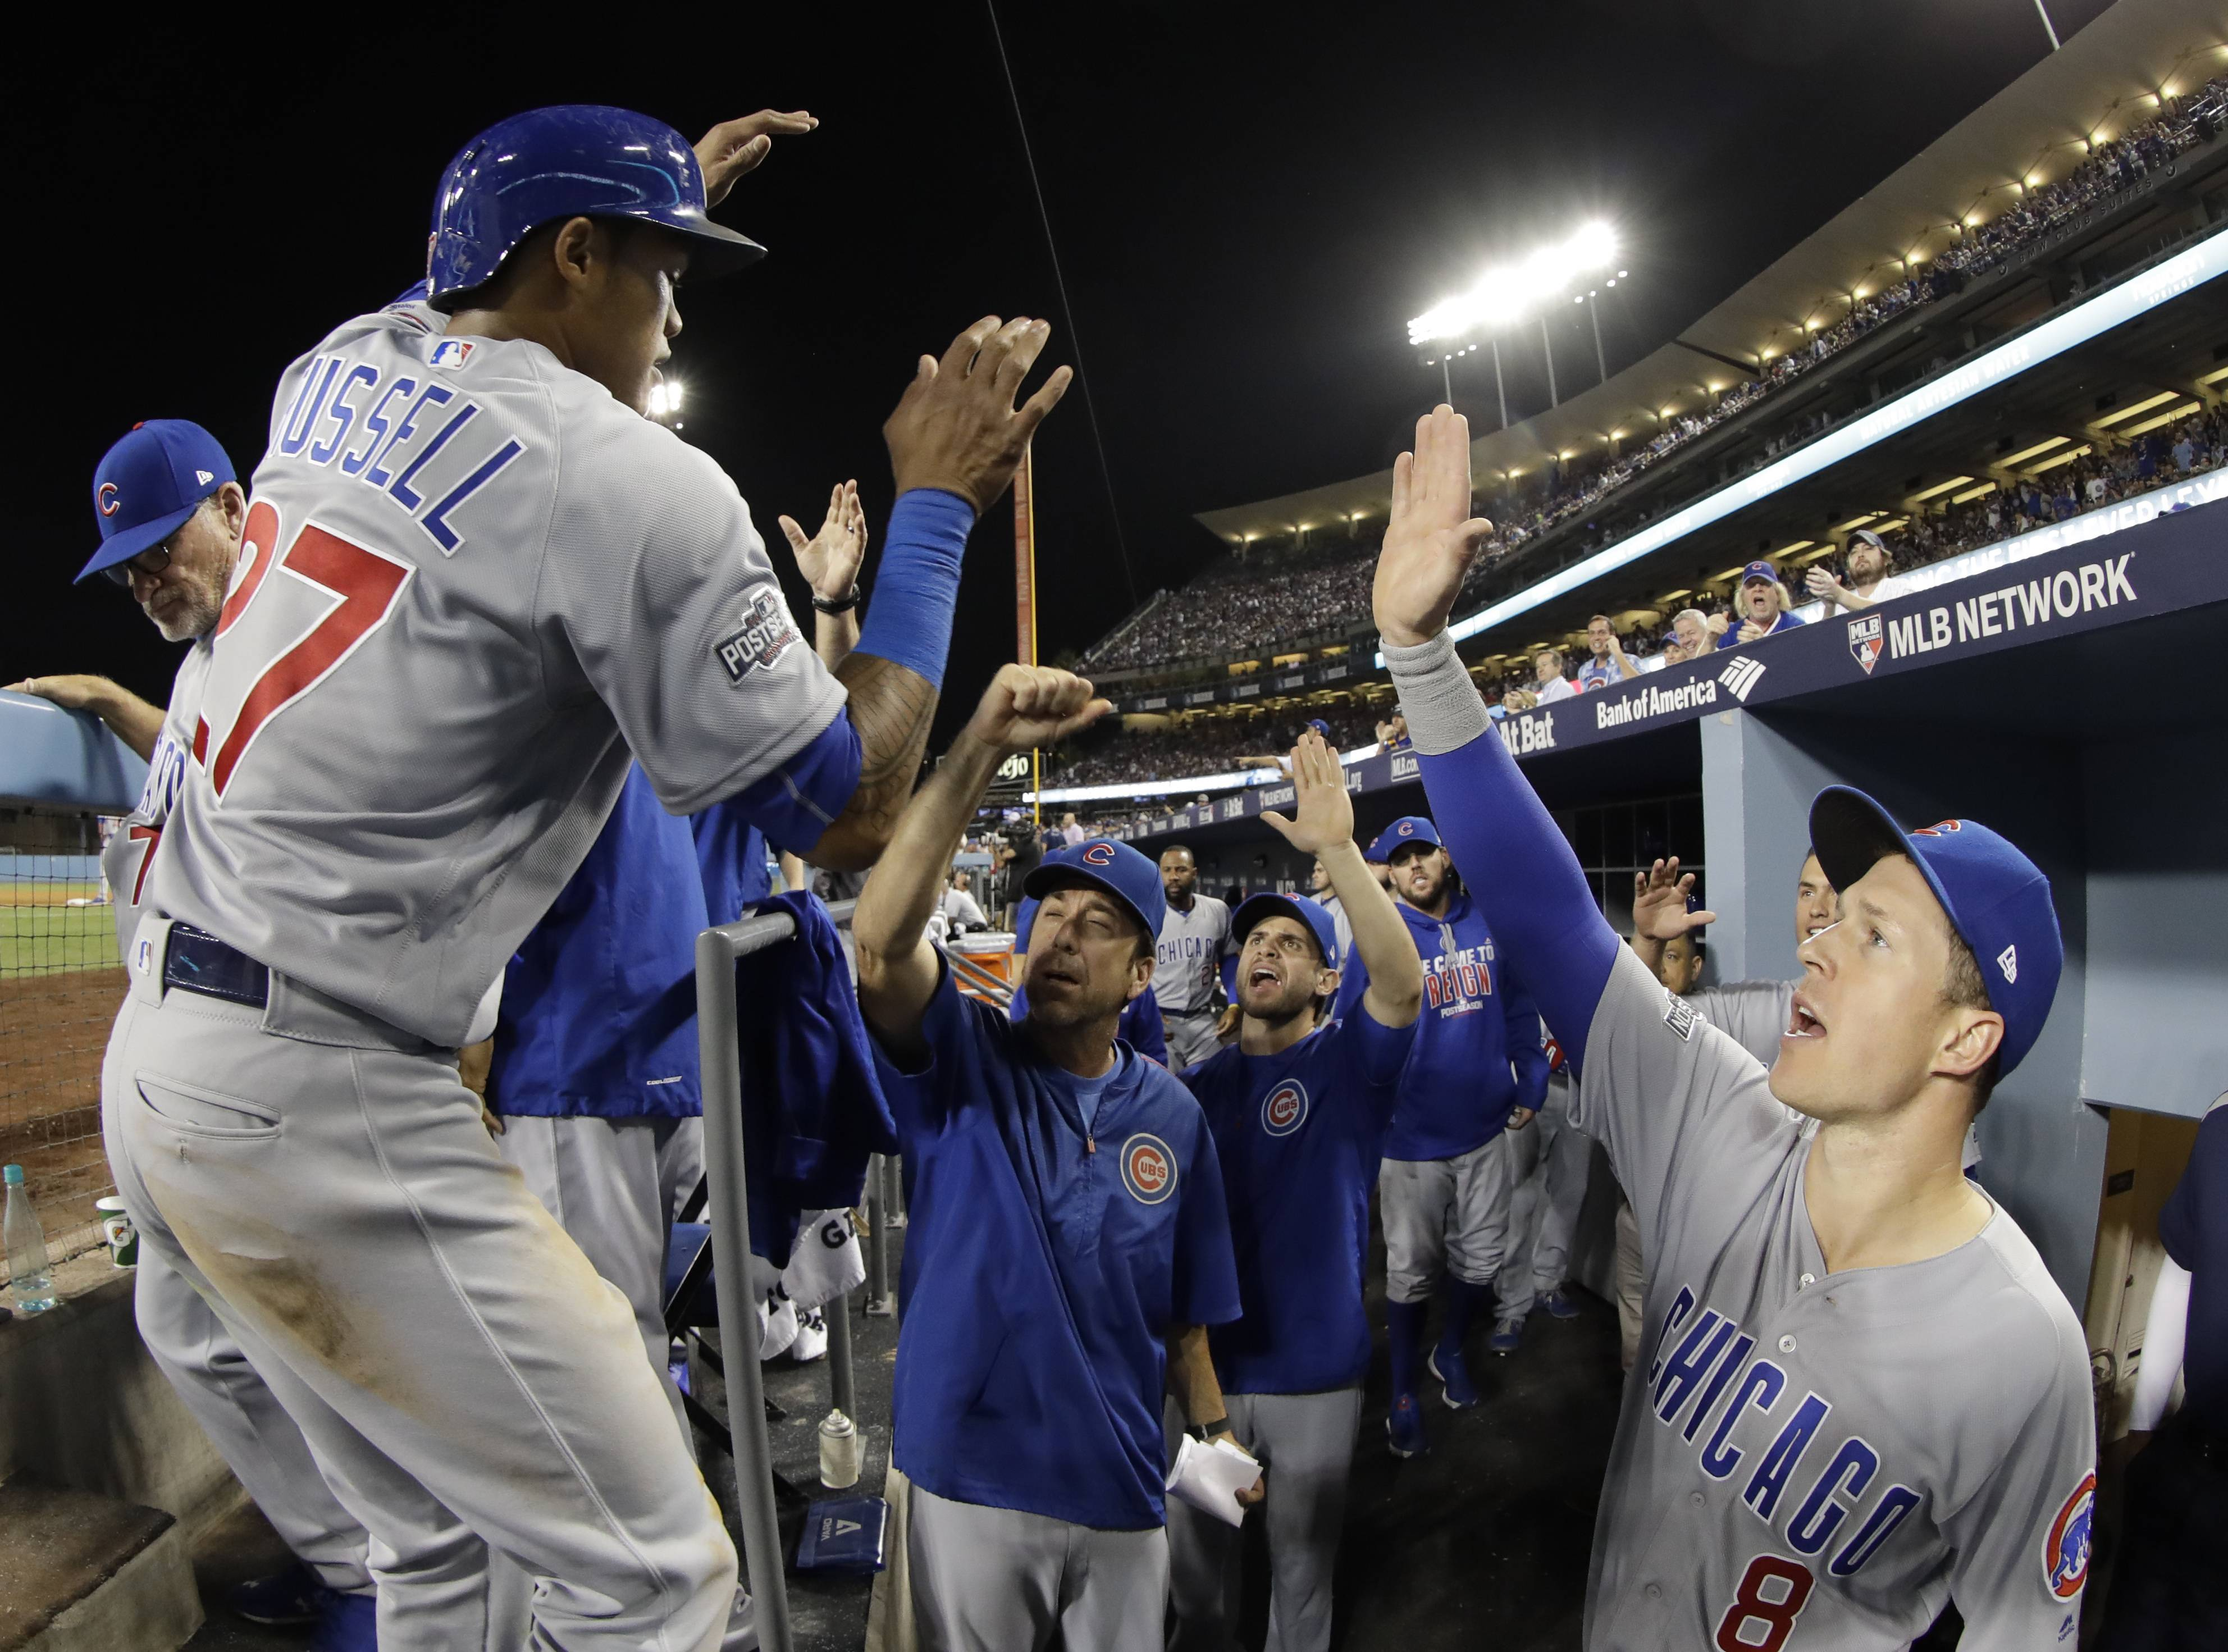 Cubs are one win from the World Series